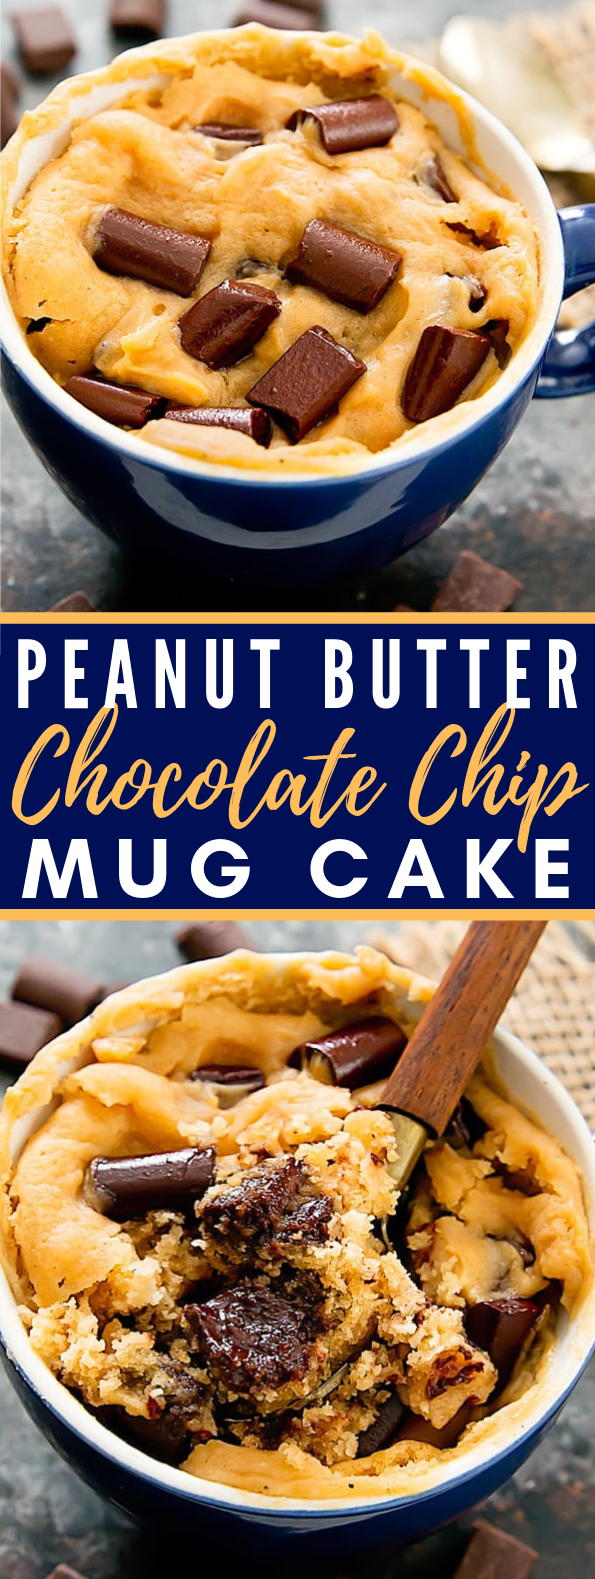 PEANUT BUTTER CHOCOLATE CHIP MUG CAKE #dessert #cookies